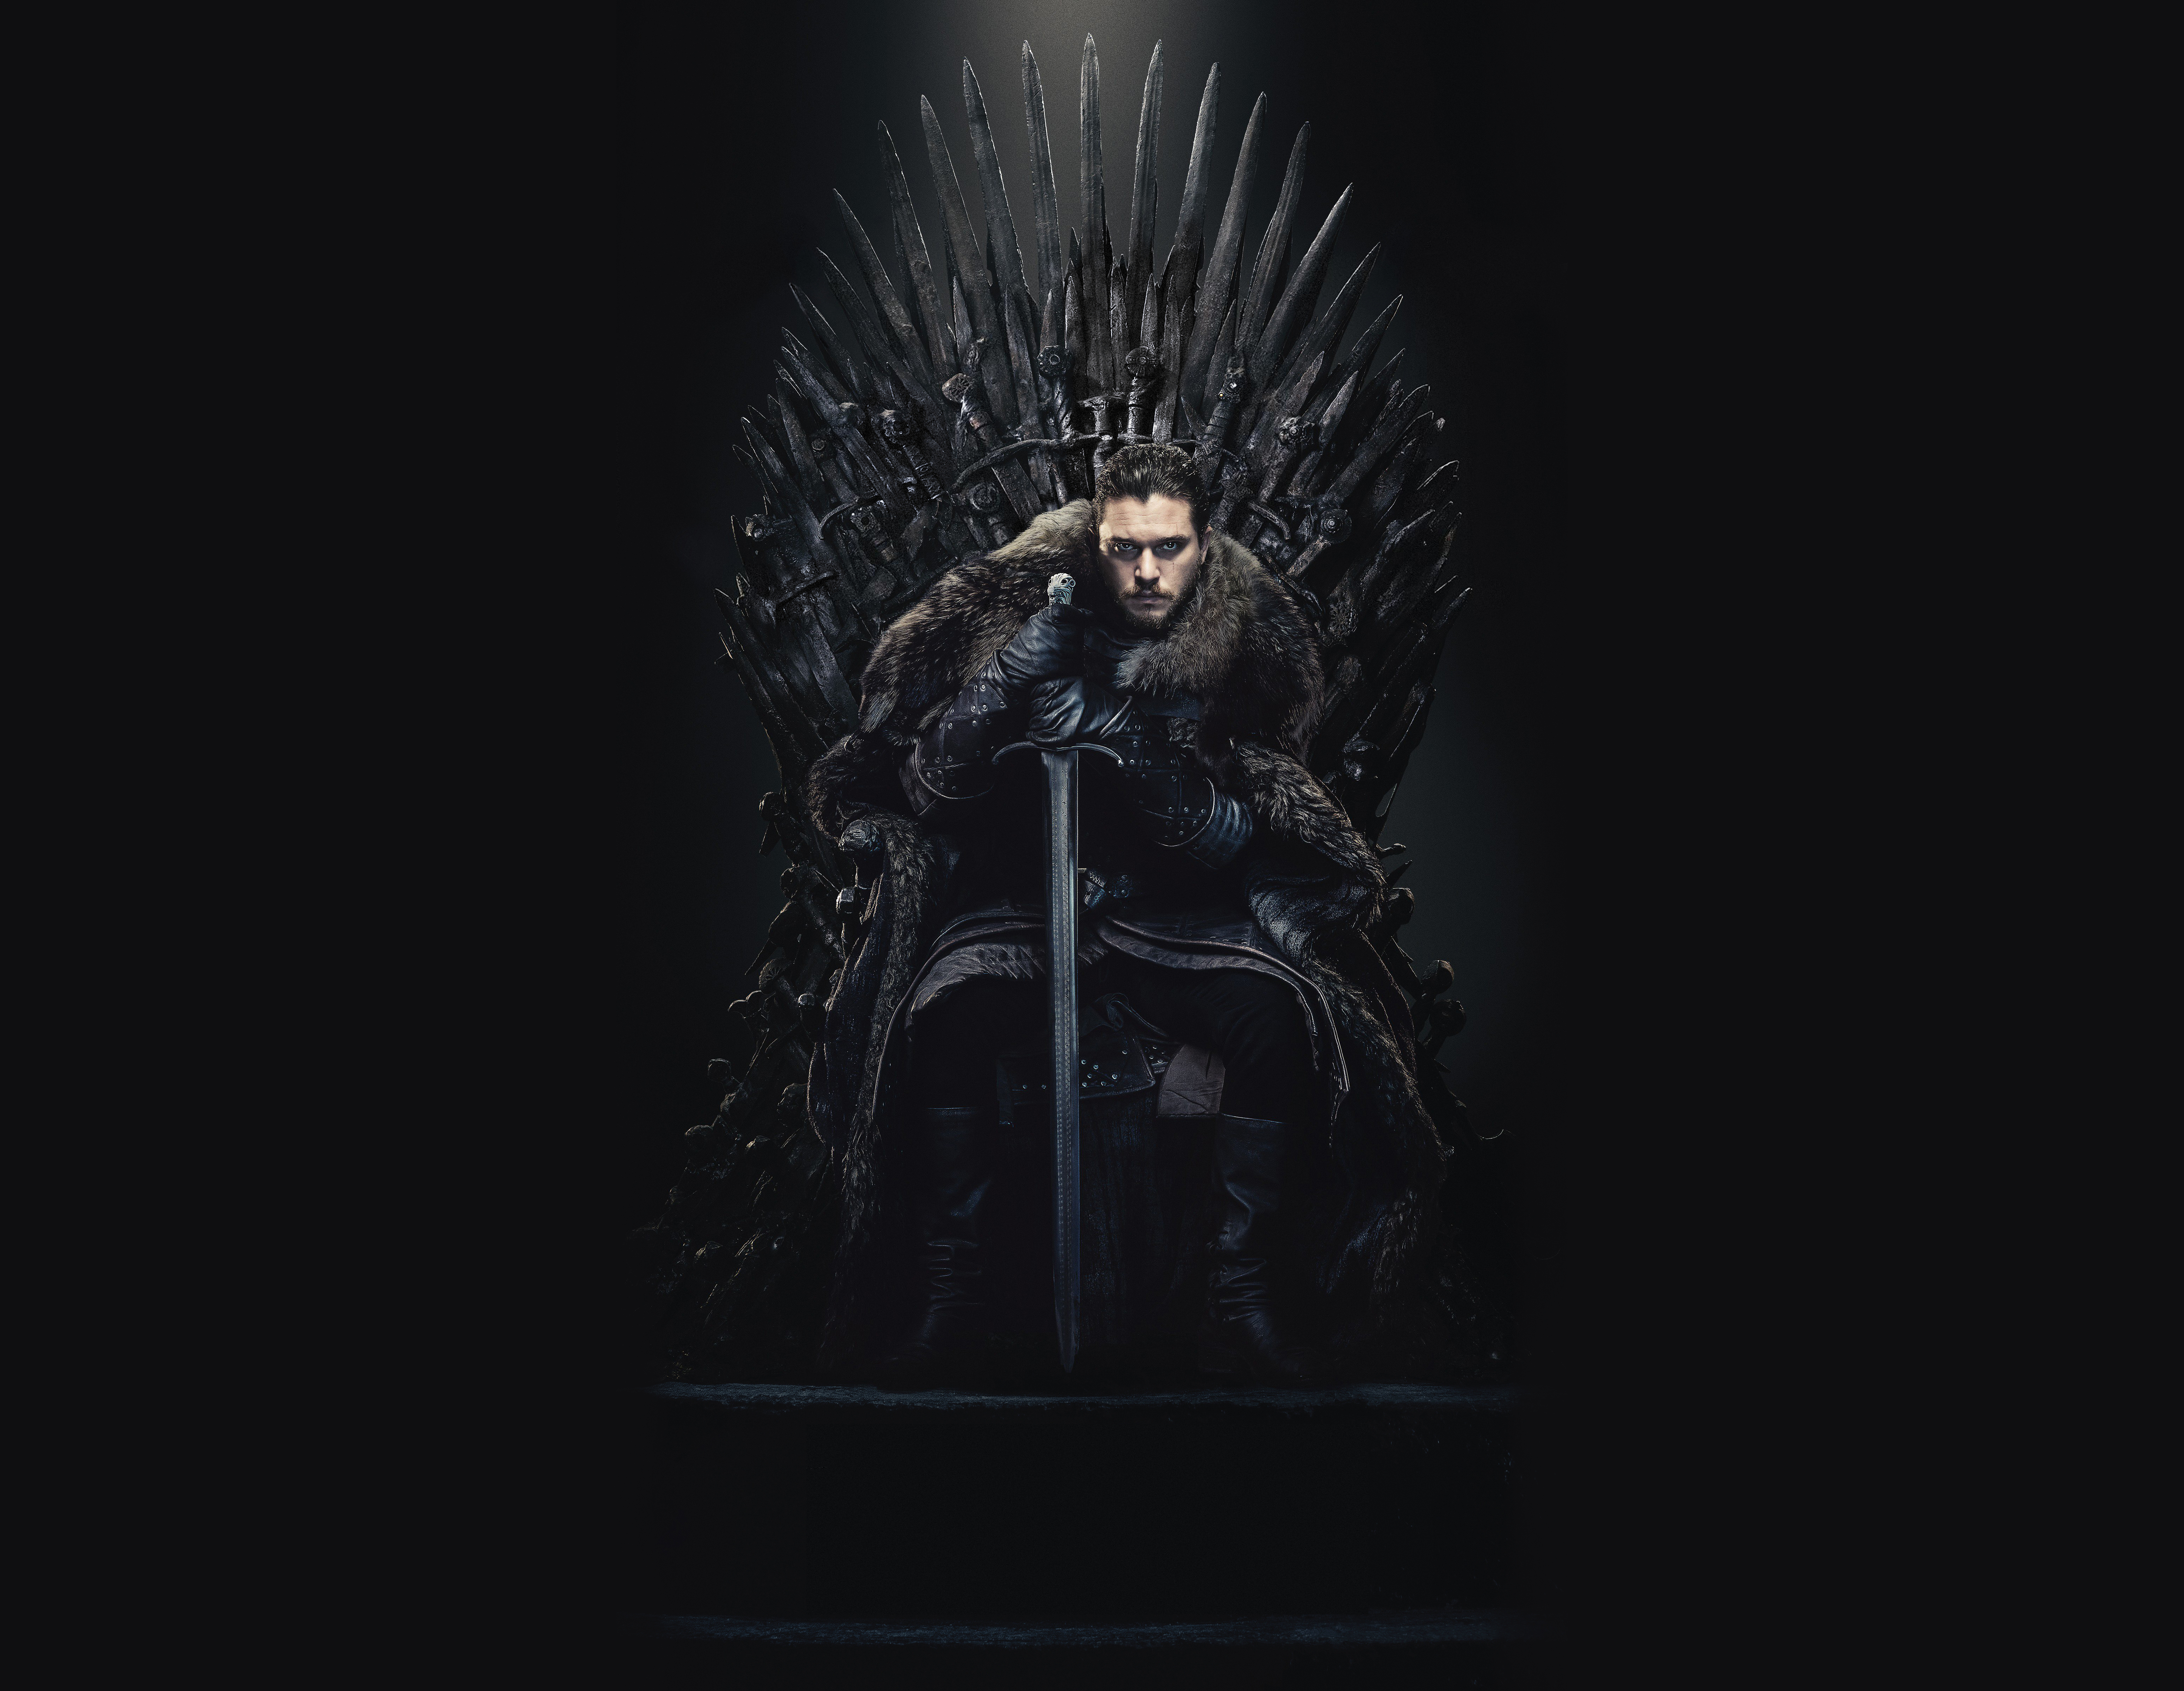 Jon Snow In The Iron Throne Wallpaper Hd Tv Series 4k Wallpapers